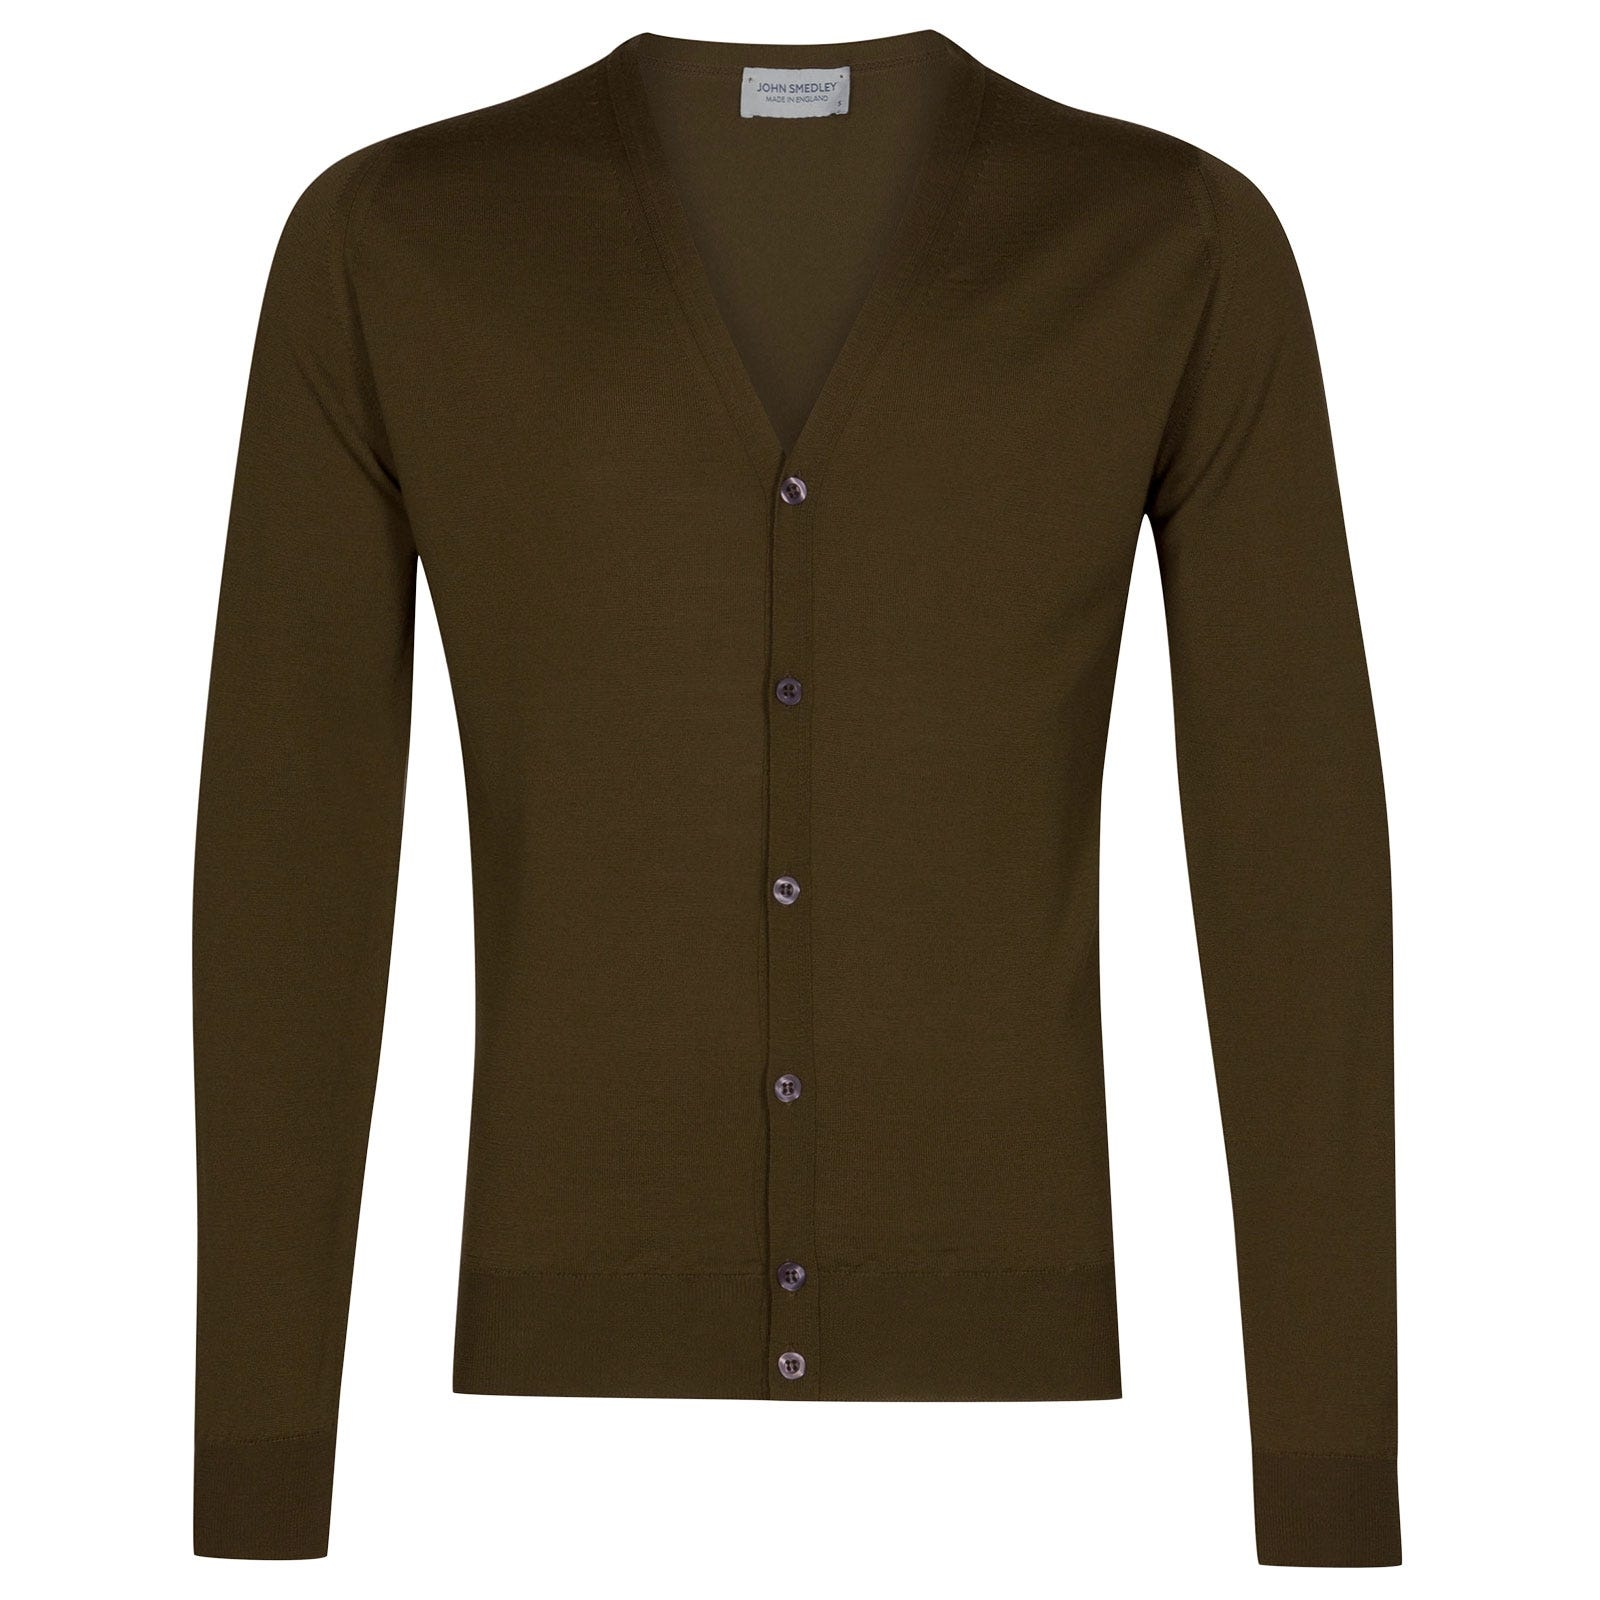 John Smedley Petworth Merino Wool Cardigan in Khaki-M